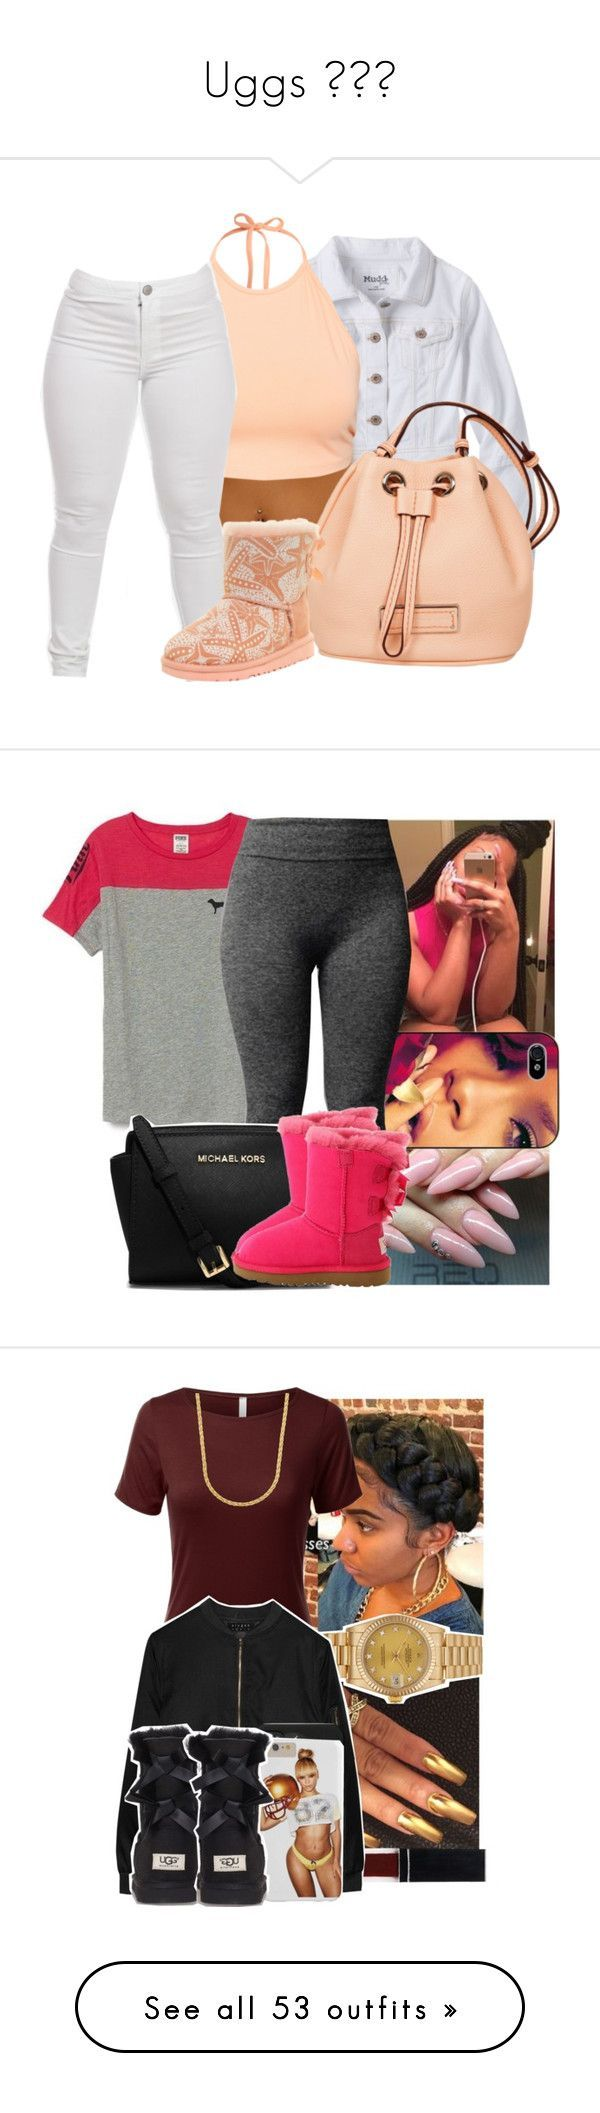 Uggs ❣ by prinxcess-adri ❤ liked on Polyvore featuring Mudd, NLY Trend, Marc by Marc Jacobs, UGG Australia, Victorias Secret, MICHAEL Michael Kors, Witchery, Rolex, Alygne and HM